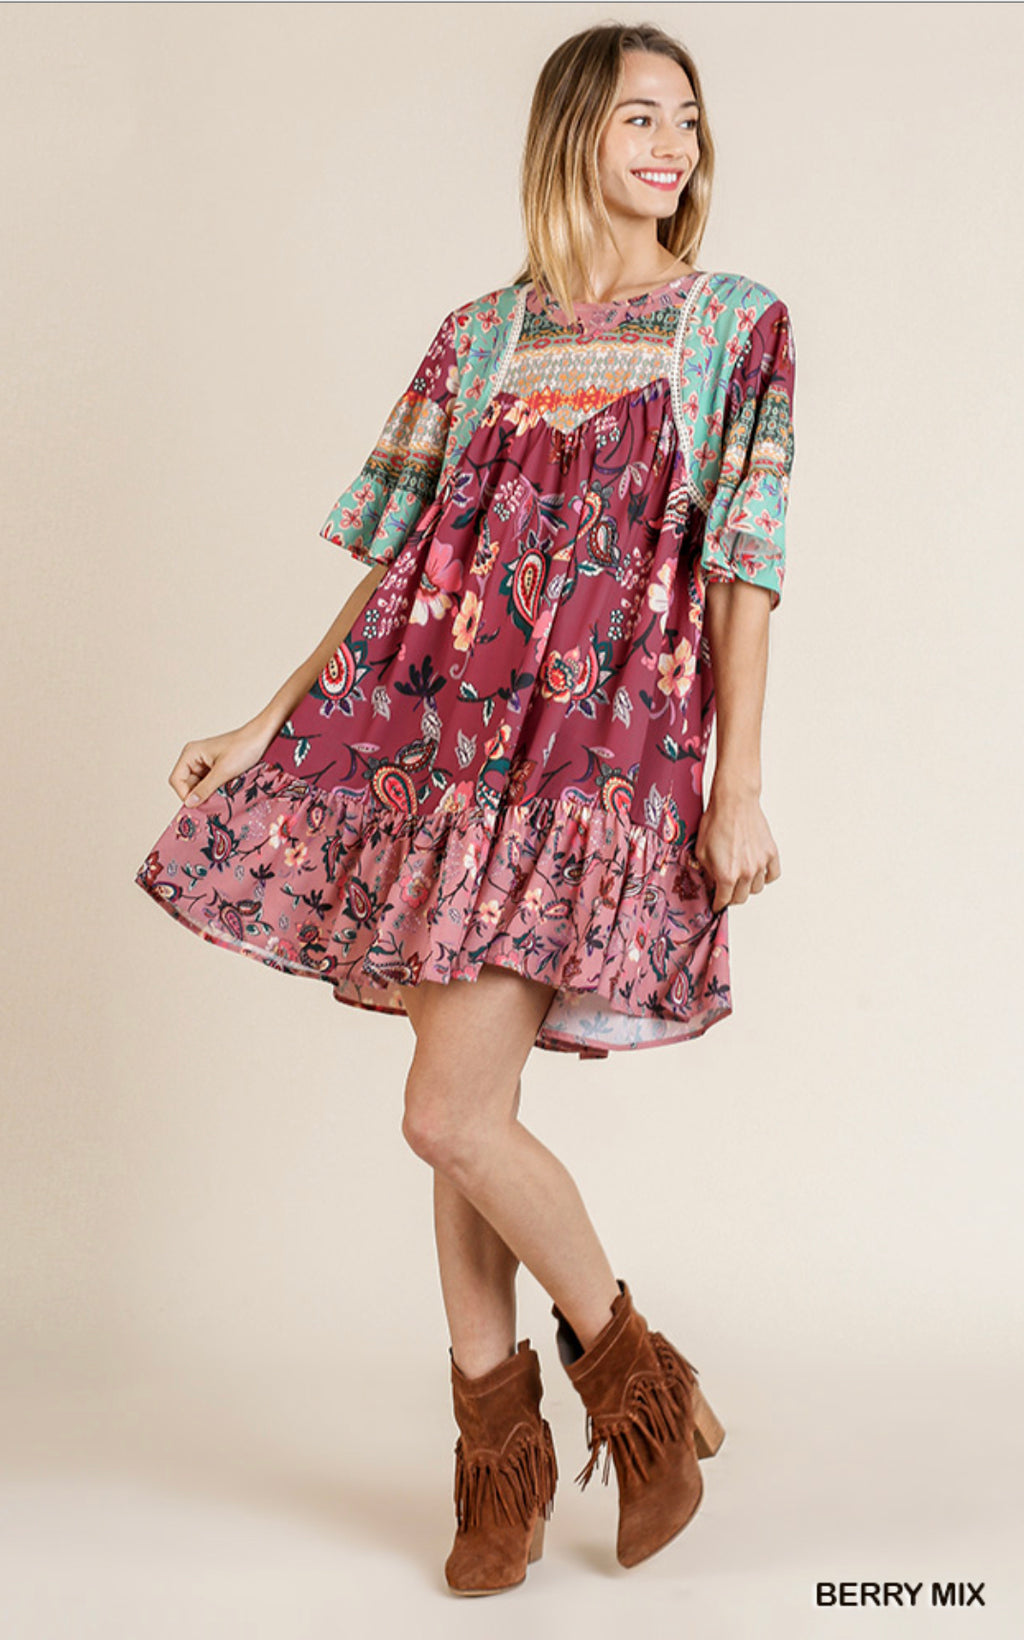 Berry Floral Mix Dress